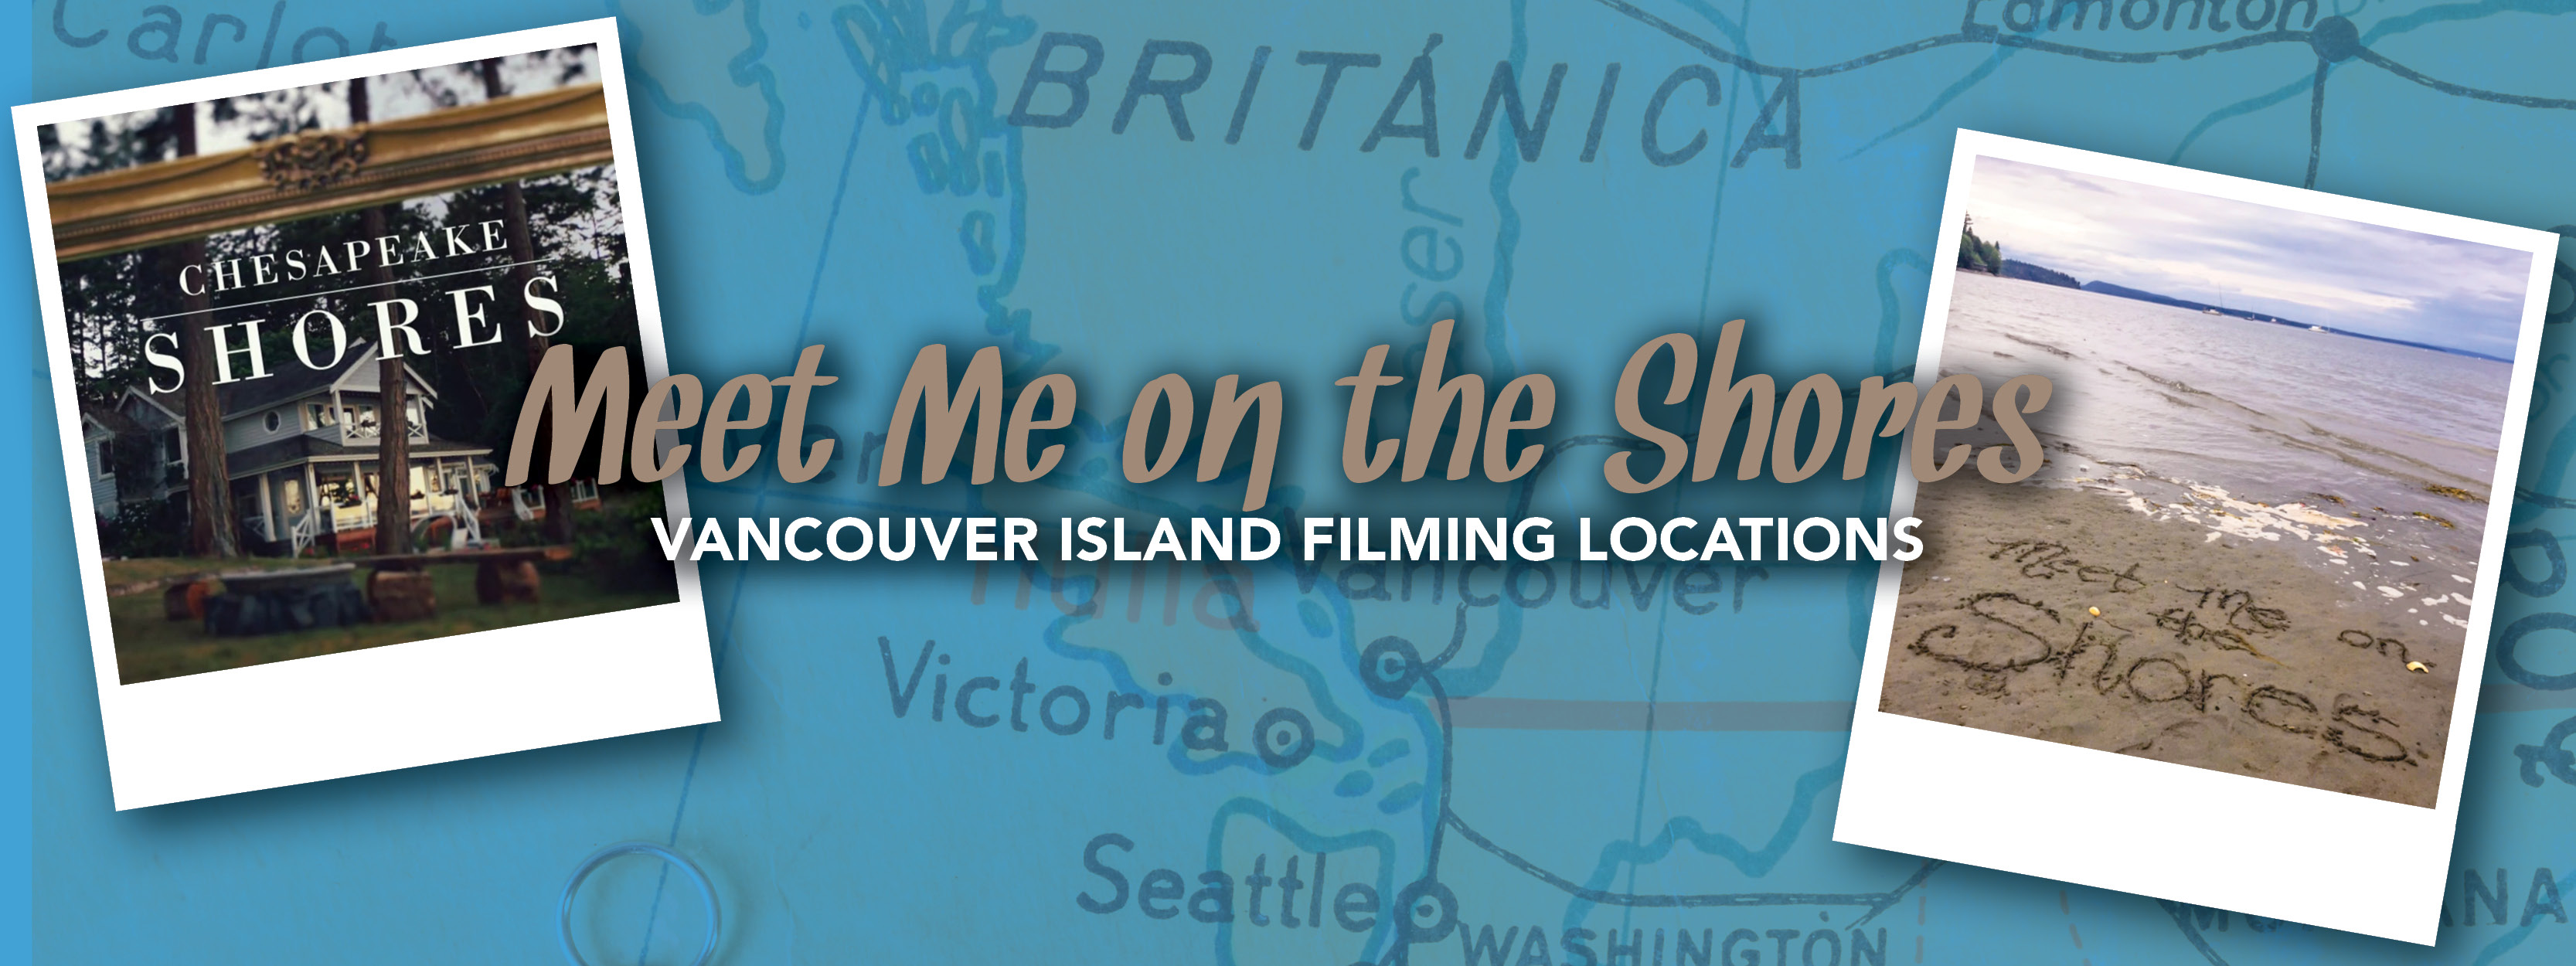 Meet Me on the Shores Vancouver Island filming locations header